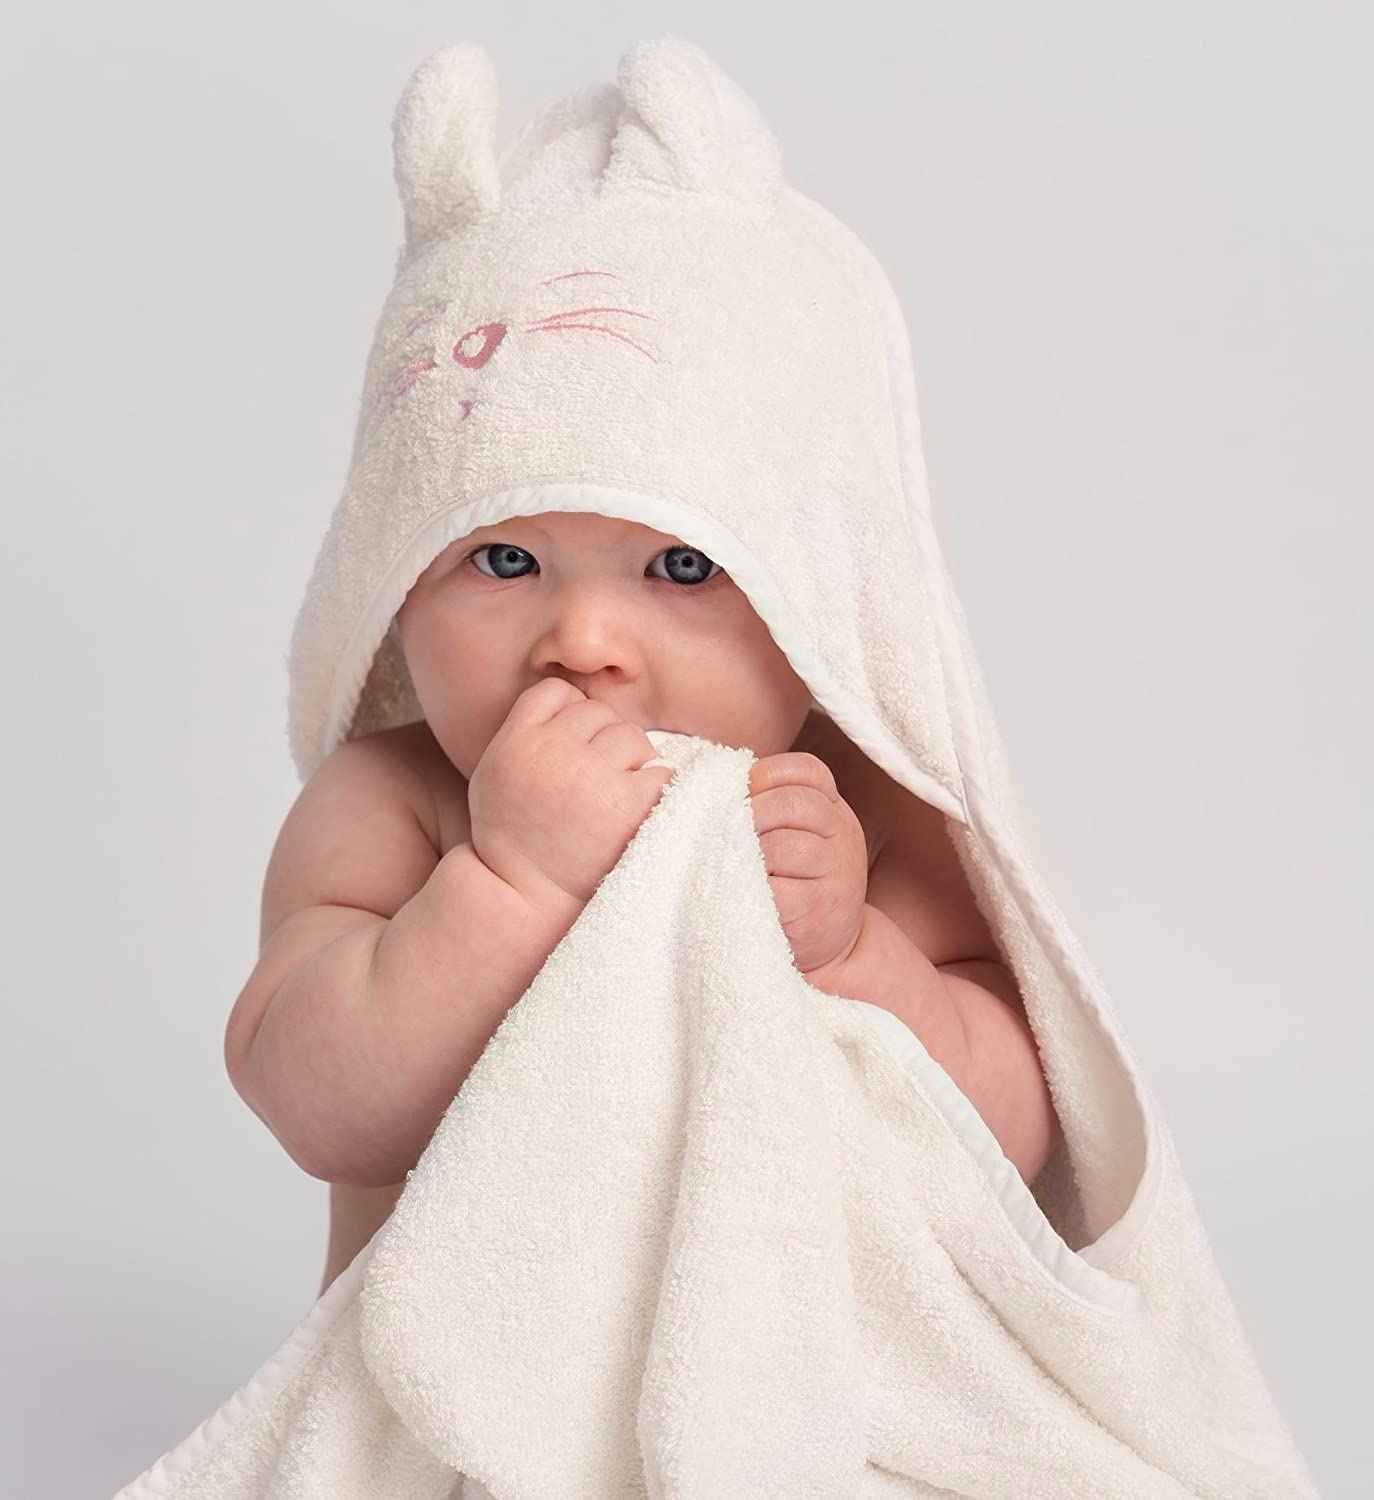 Tiny Chipmunk Bamboo Hooded Baby Towel with Ears - Extra Large - Premium Quality - Extra Soft, Thick and Absorbent for Newborn, Baby, Toddler and Kids Up to 4 Years - Perfect for Swimming